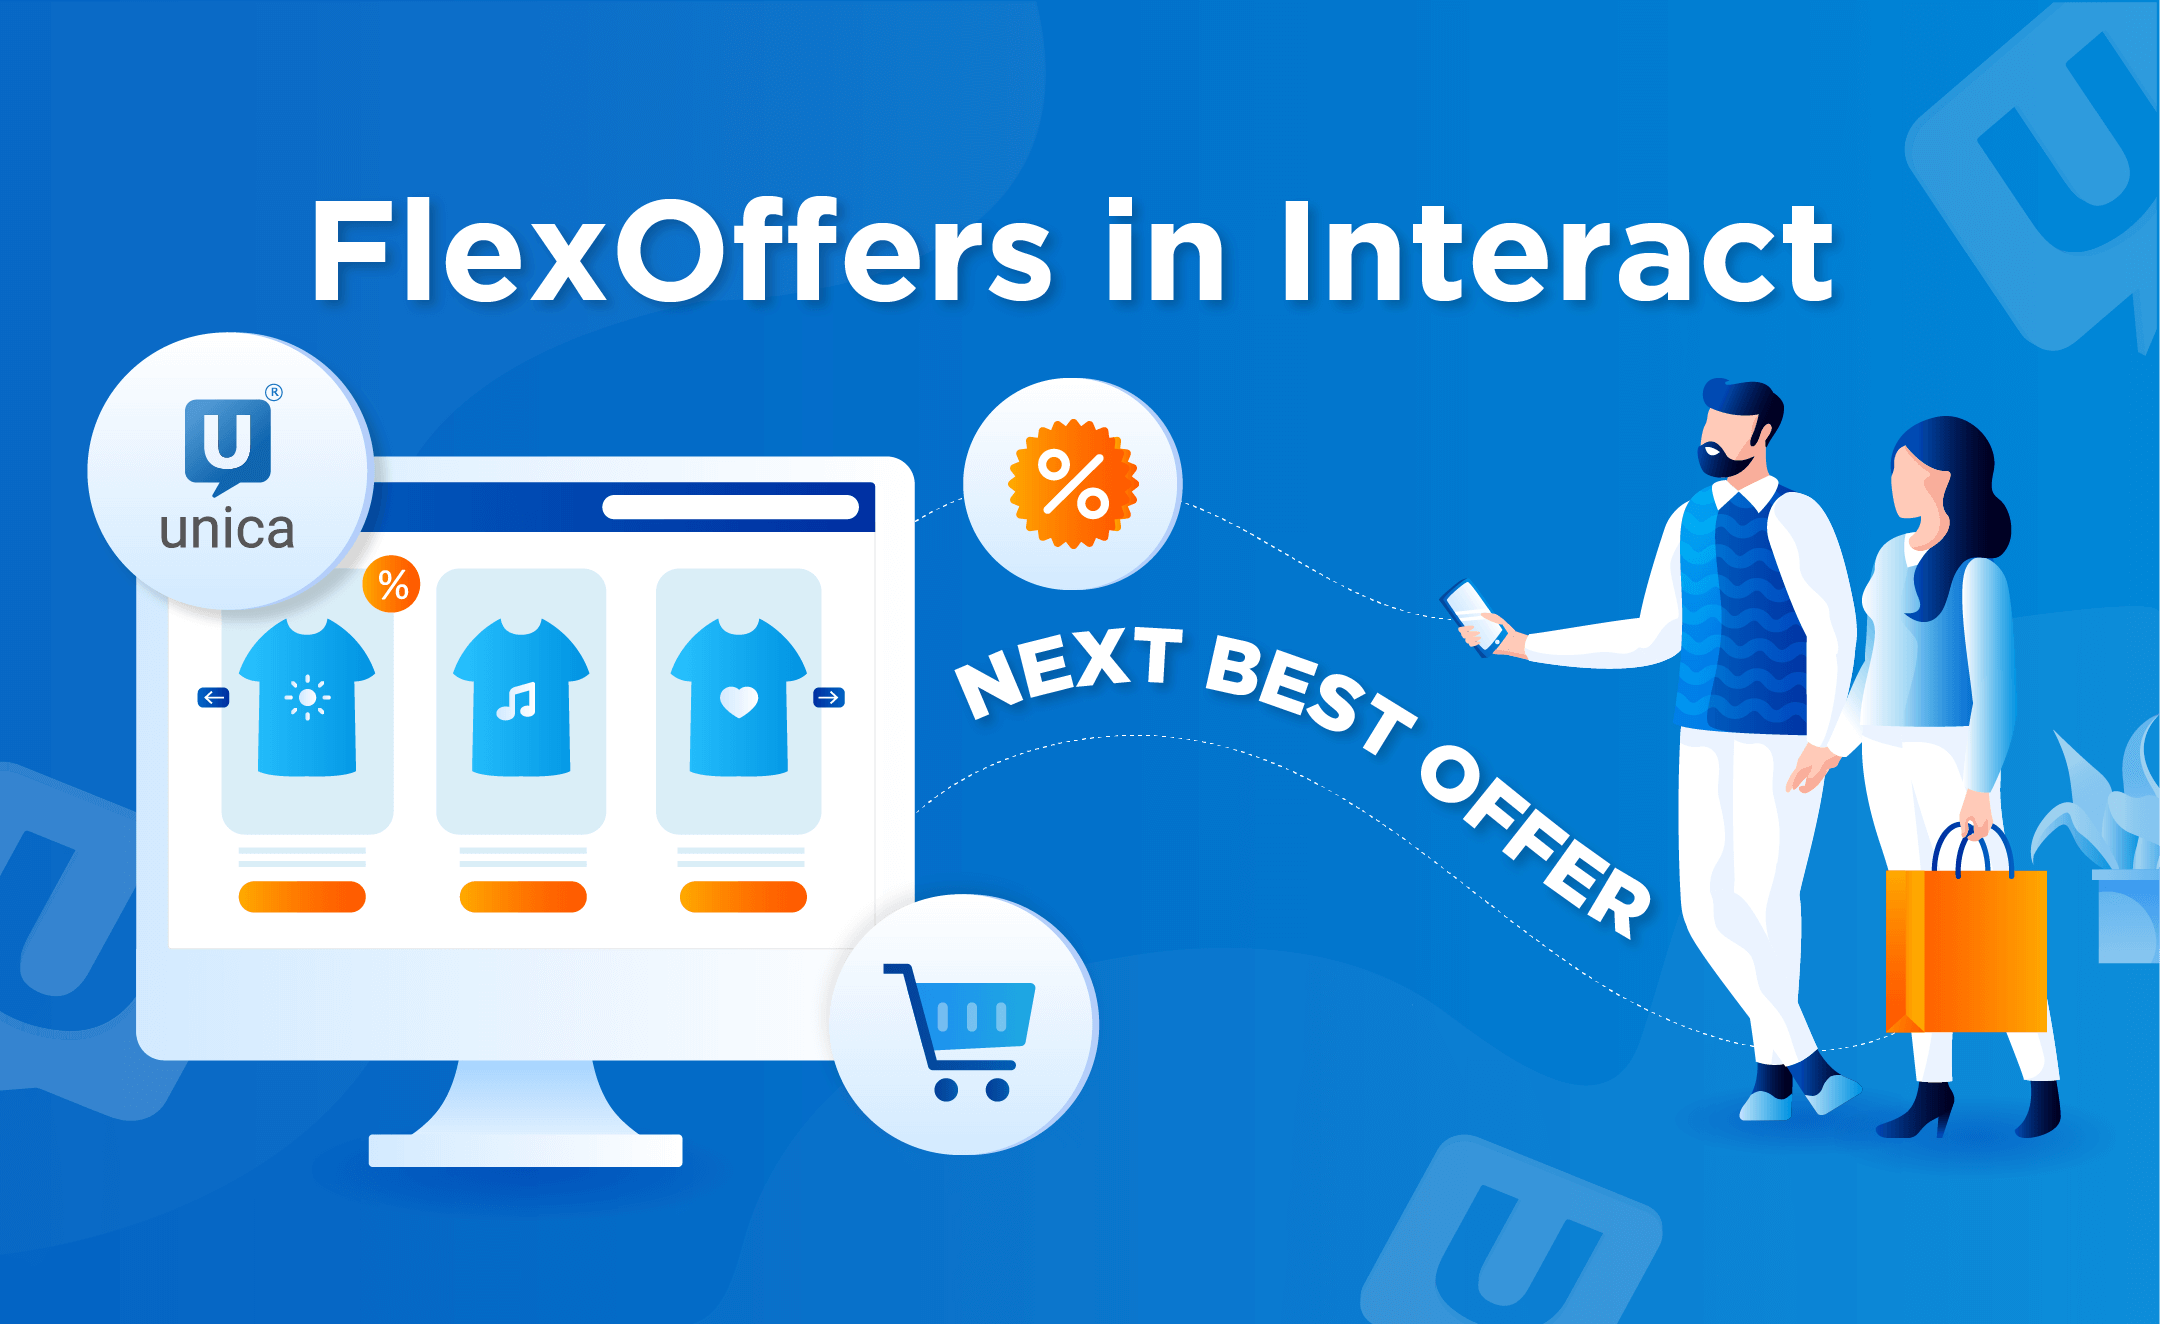 FlexOffers mapping in Interact